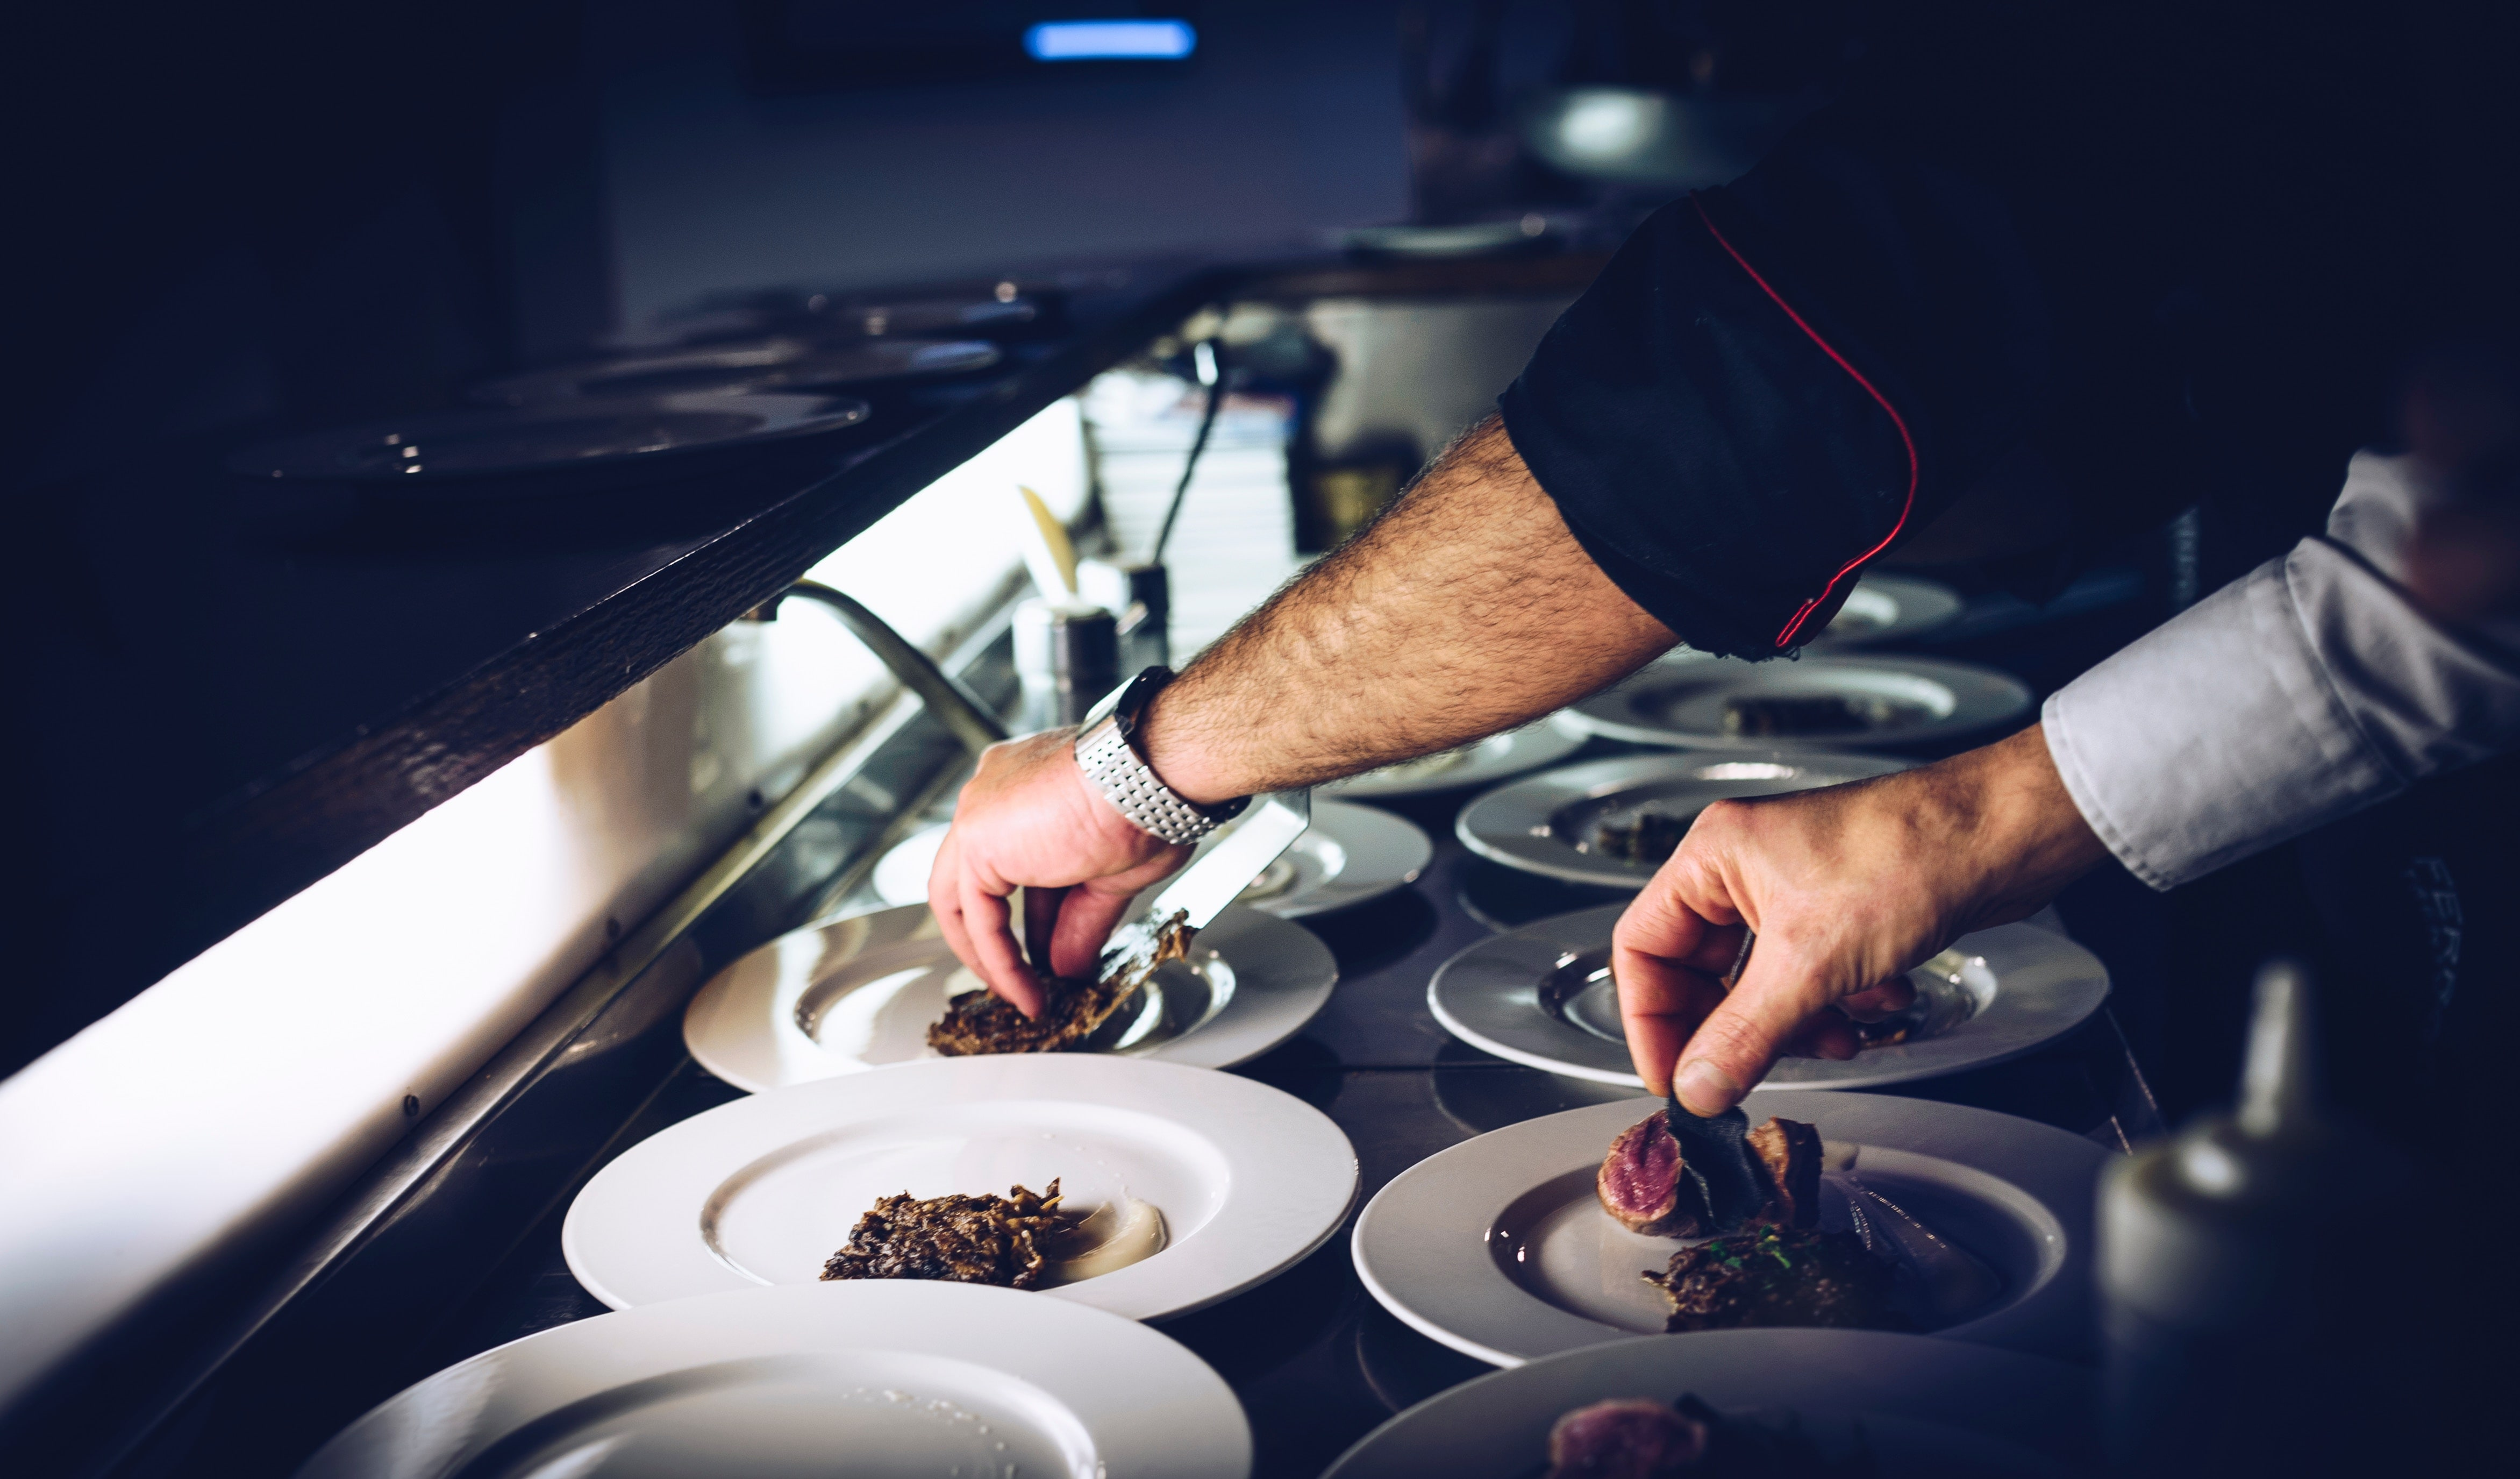 Todelli introduces online fine food marketplace connecting chefs and producers directly